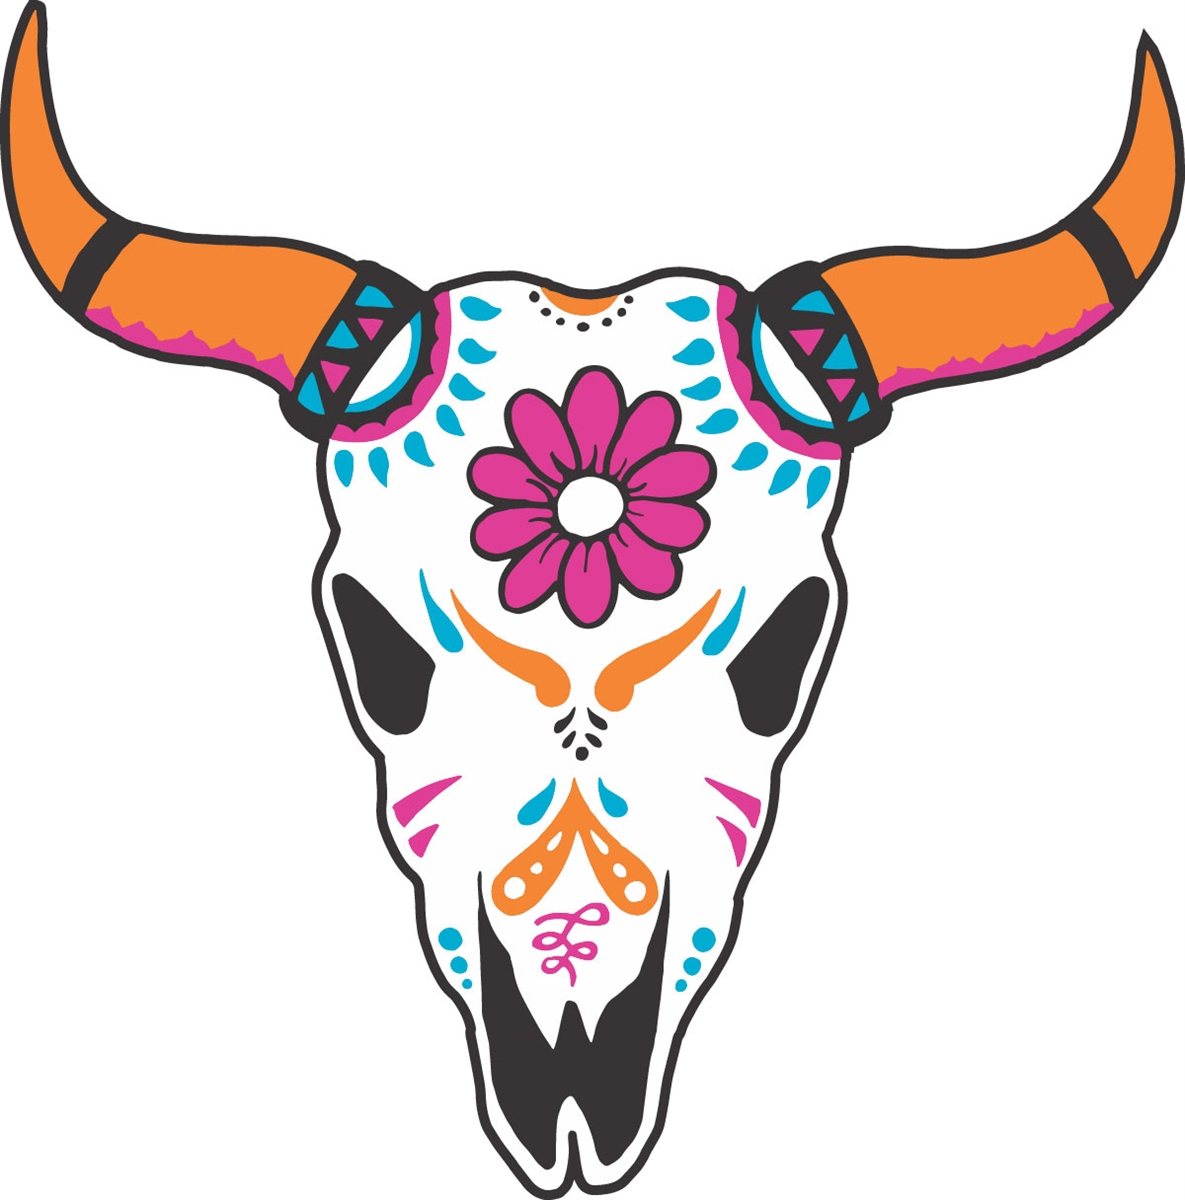 Boho cow skull clipart graphic royalty free library Boho Cow Skull SVG graphic royalty free library